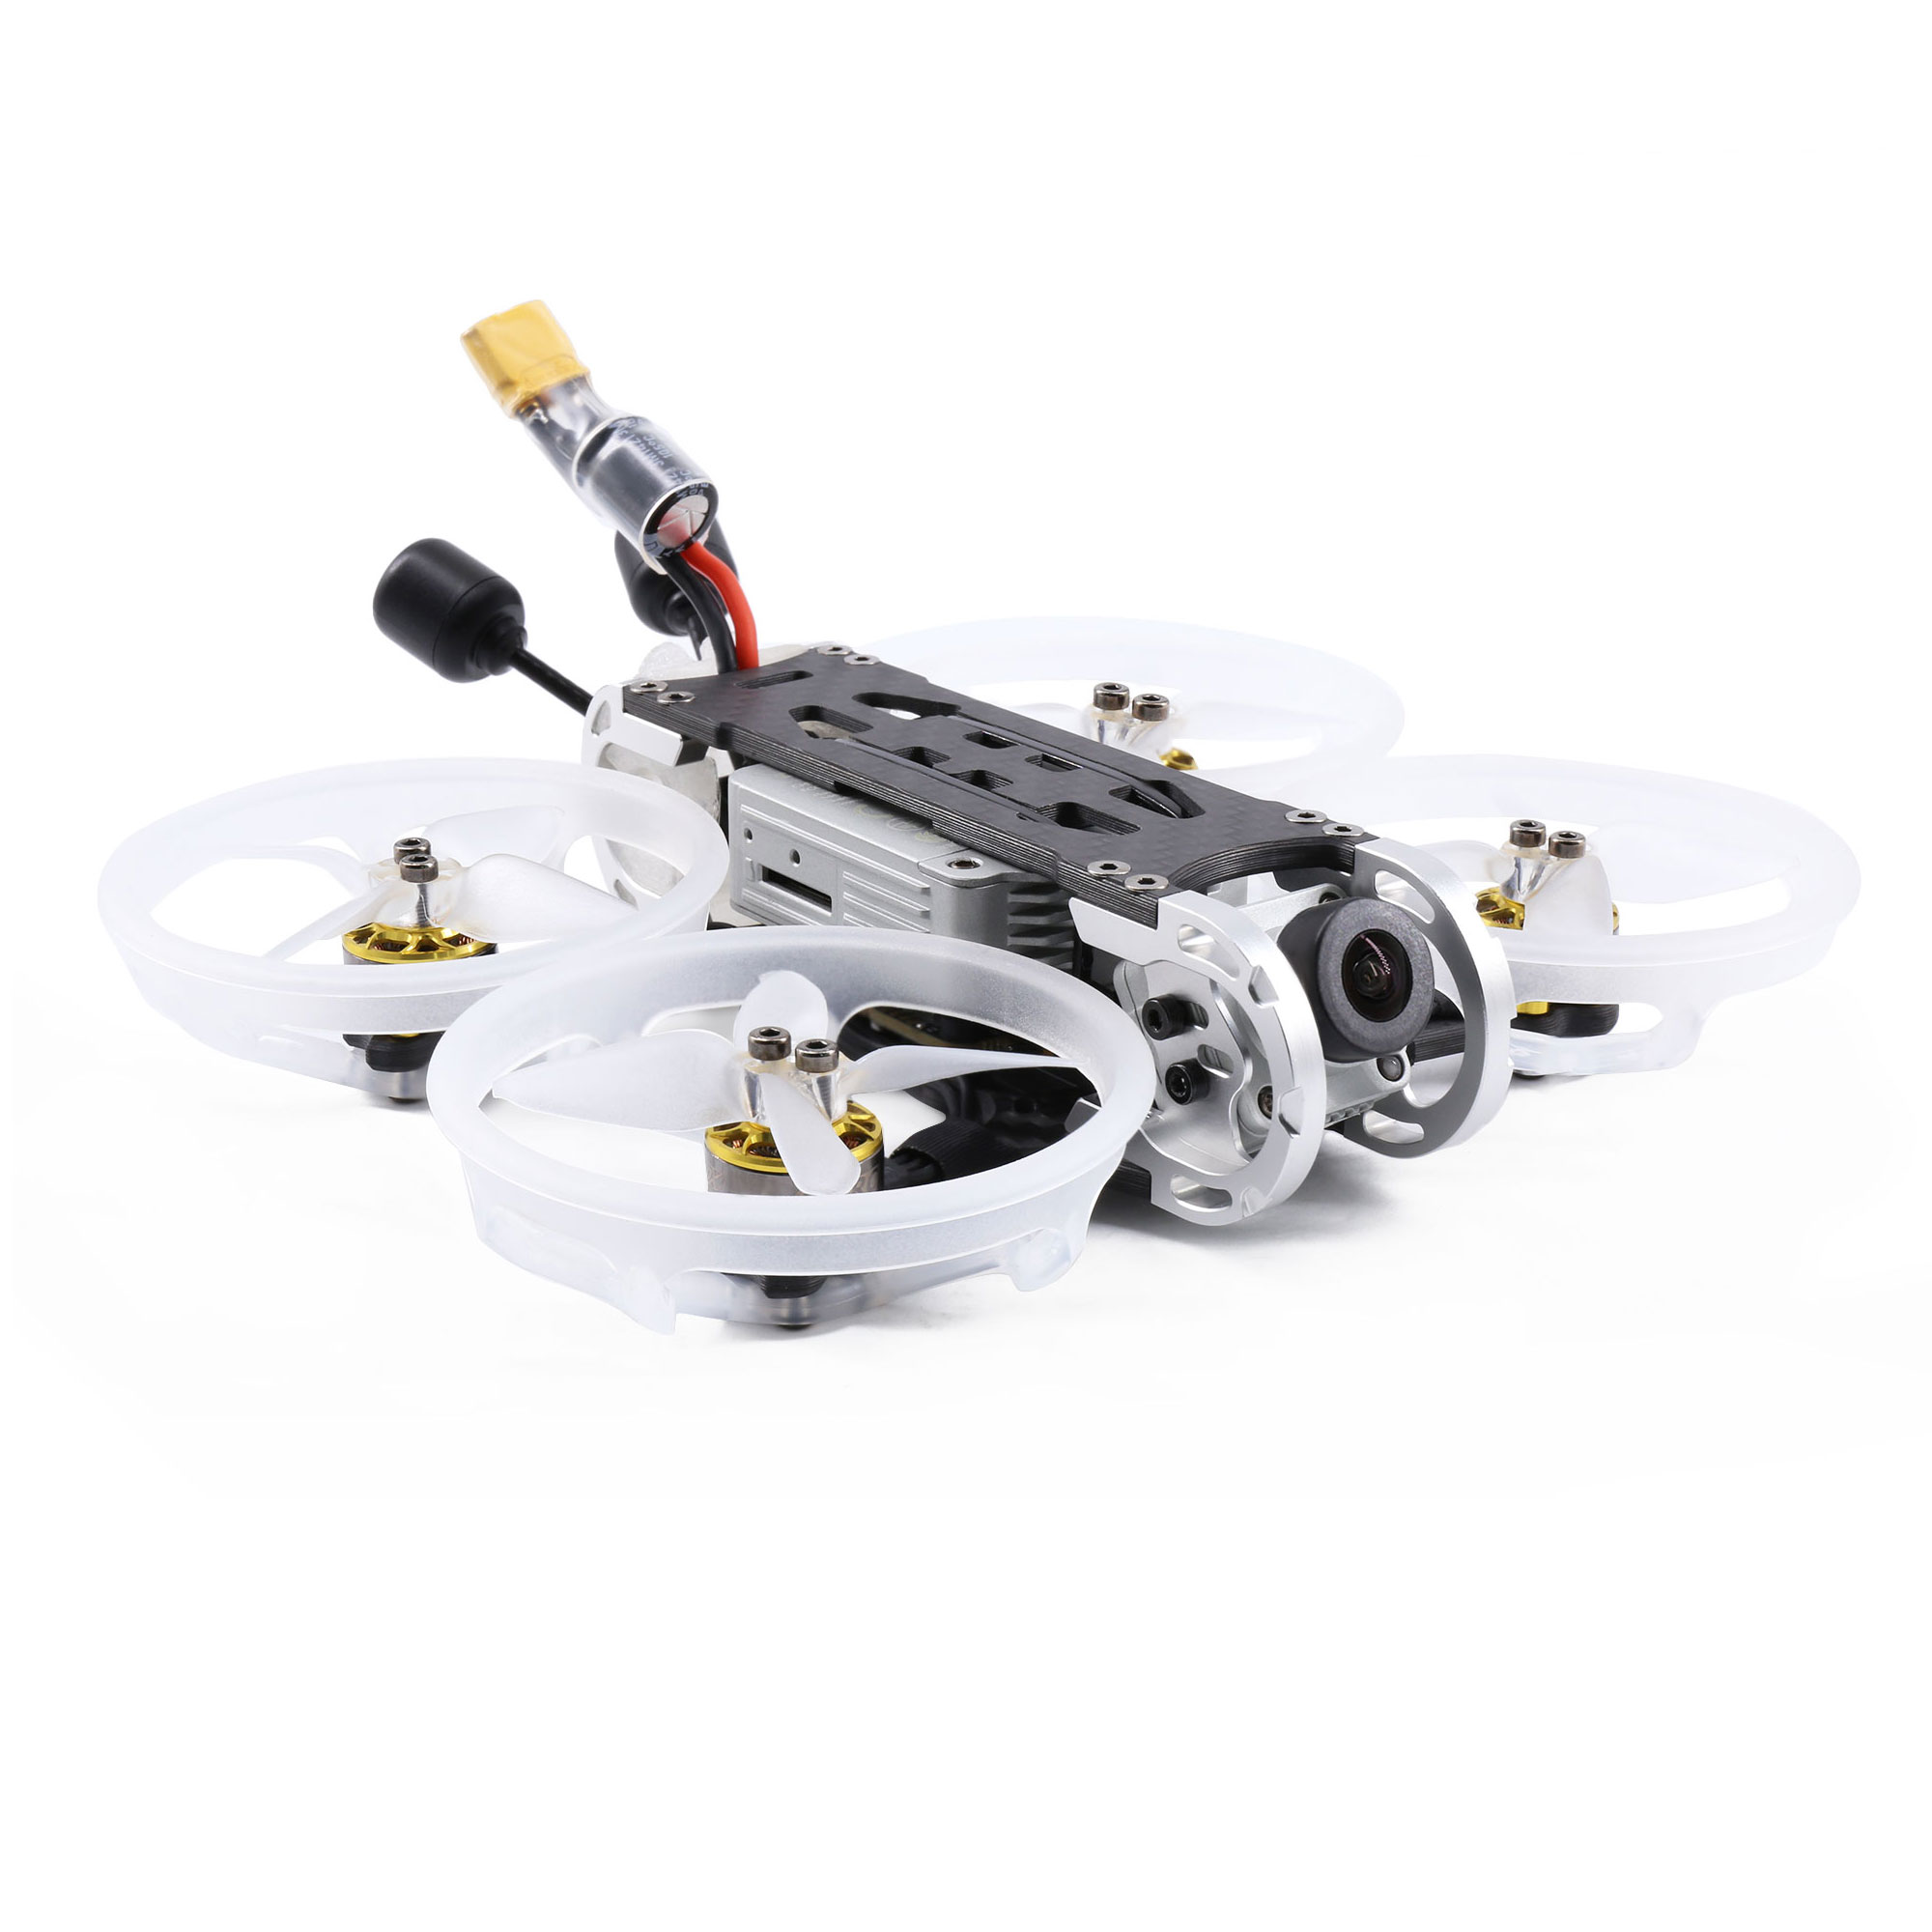 GEPRC ROCKET DJI FPV Air Unit/Caddx Vista HD FPV 112mm F4 4S 2-inch Racing Drone